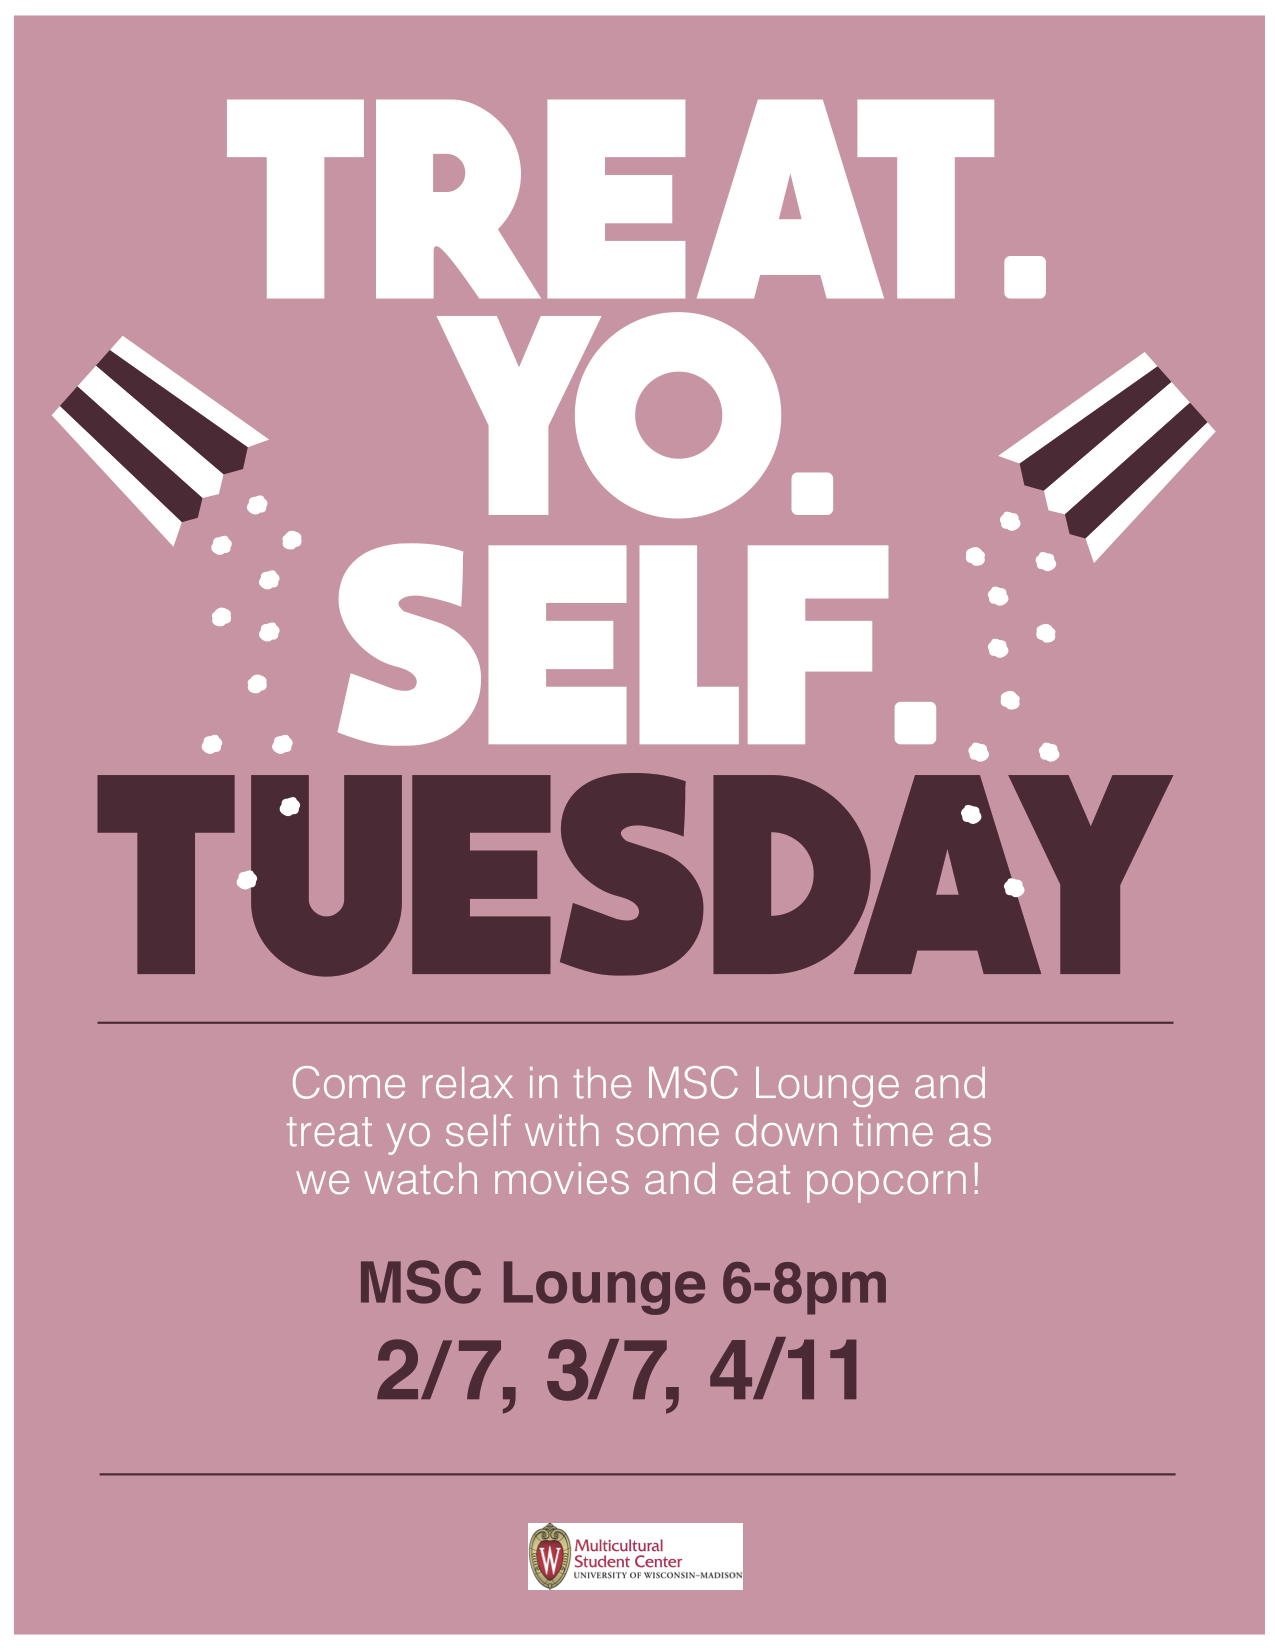 Come relax in the MSC Lounge and treat yo self with some down time as we watch movies and eat popcorn! Treat Yo self Tuesday is held monthly on Tuesdays from 6 to 8pm in MSC Lounge on February 7th, March 7th, and April 11th.